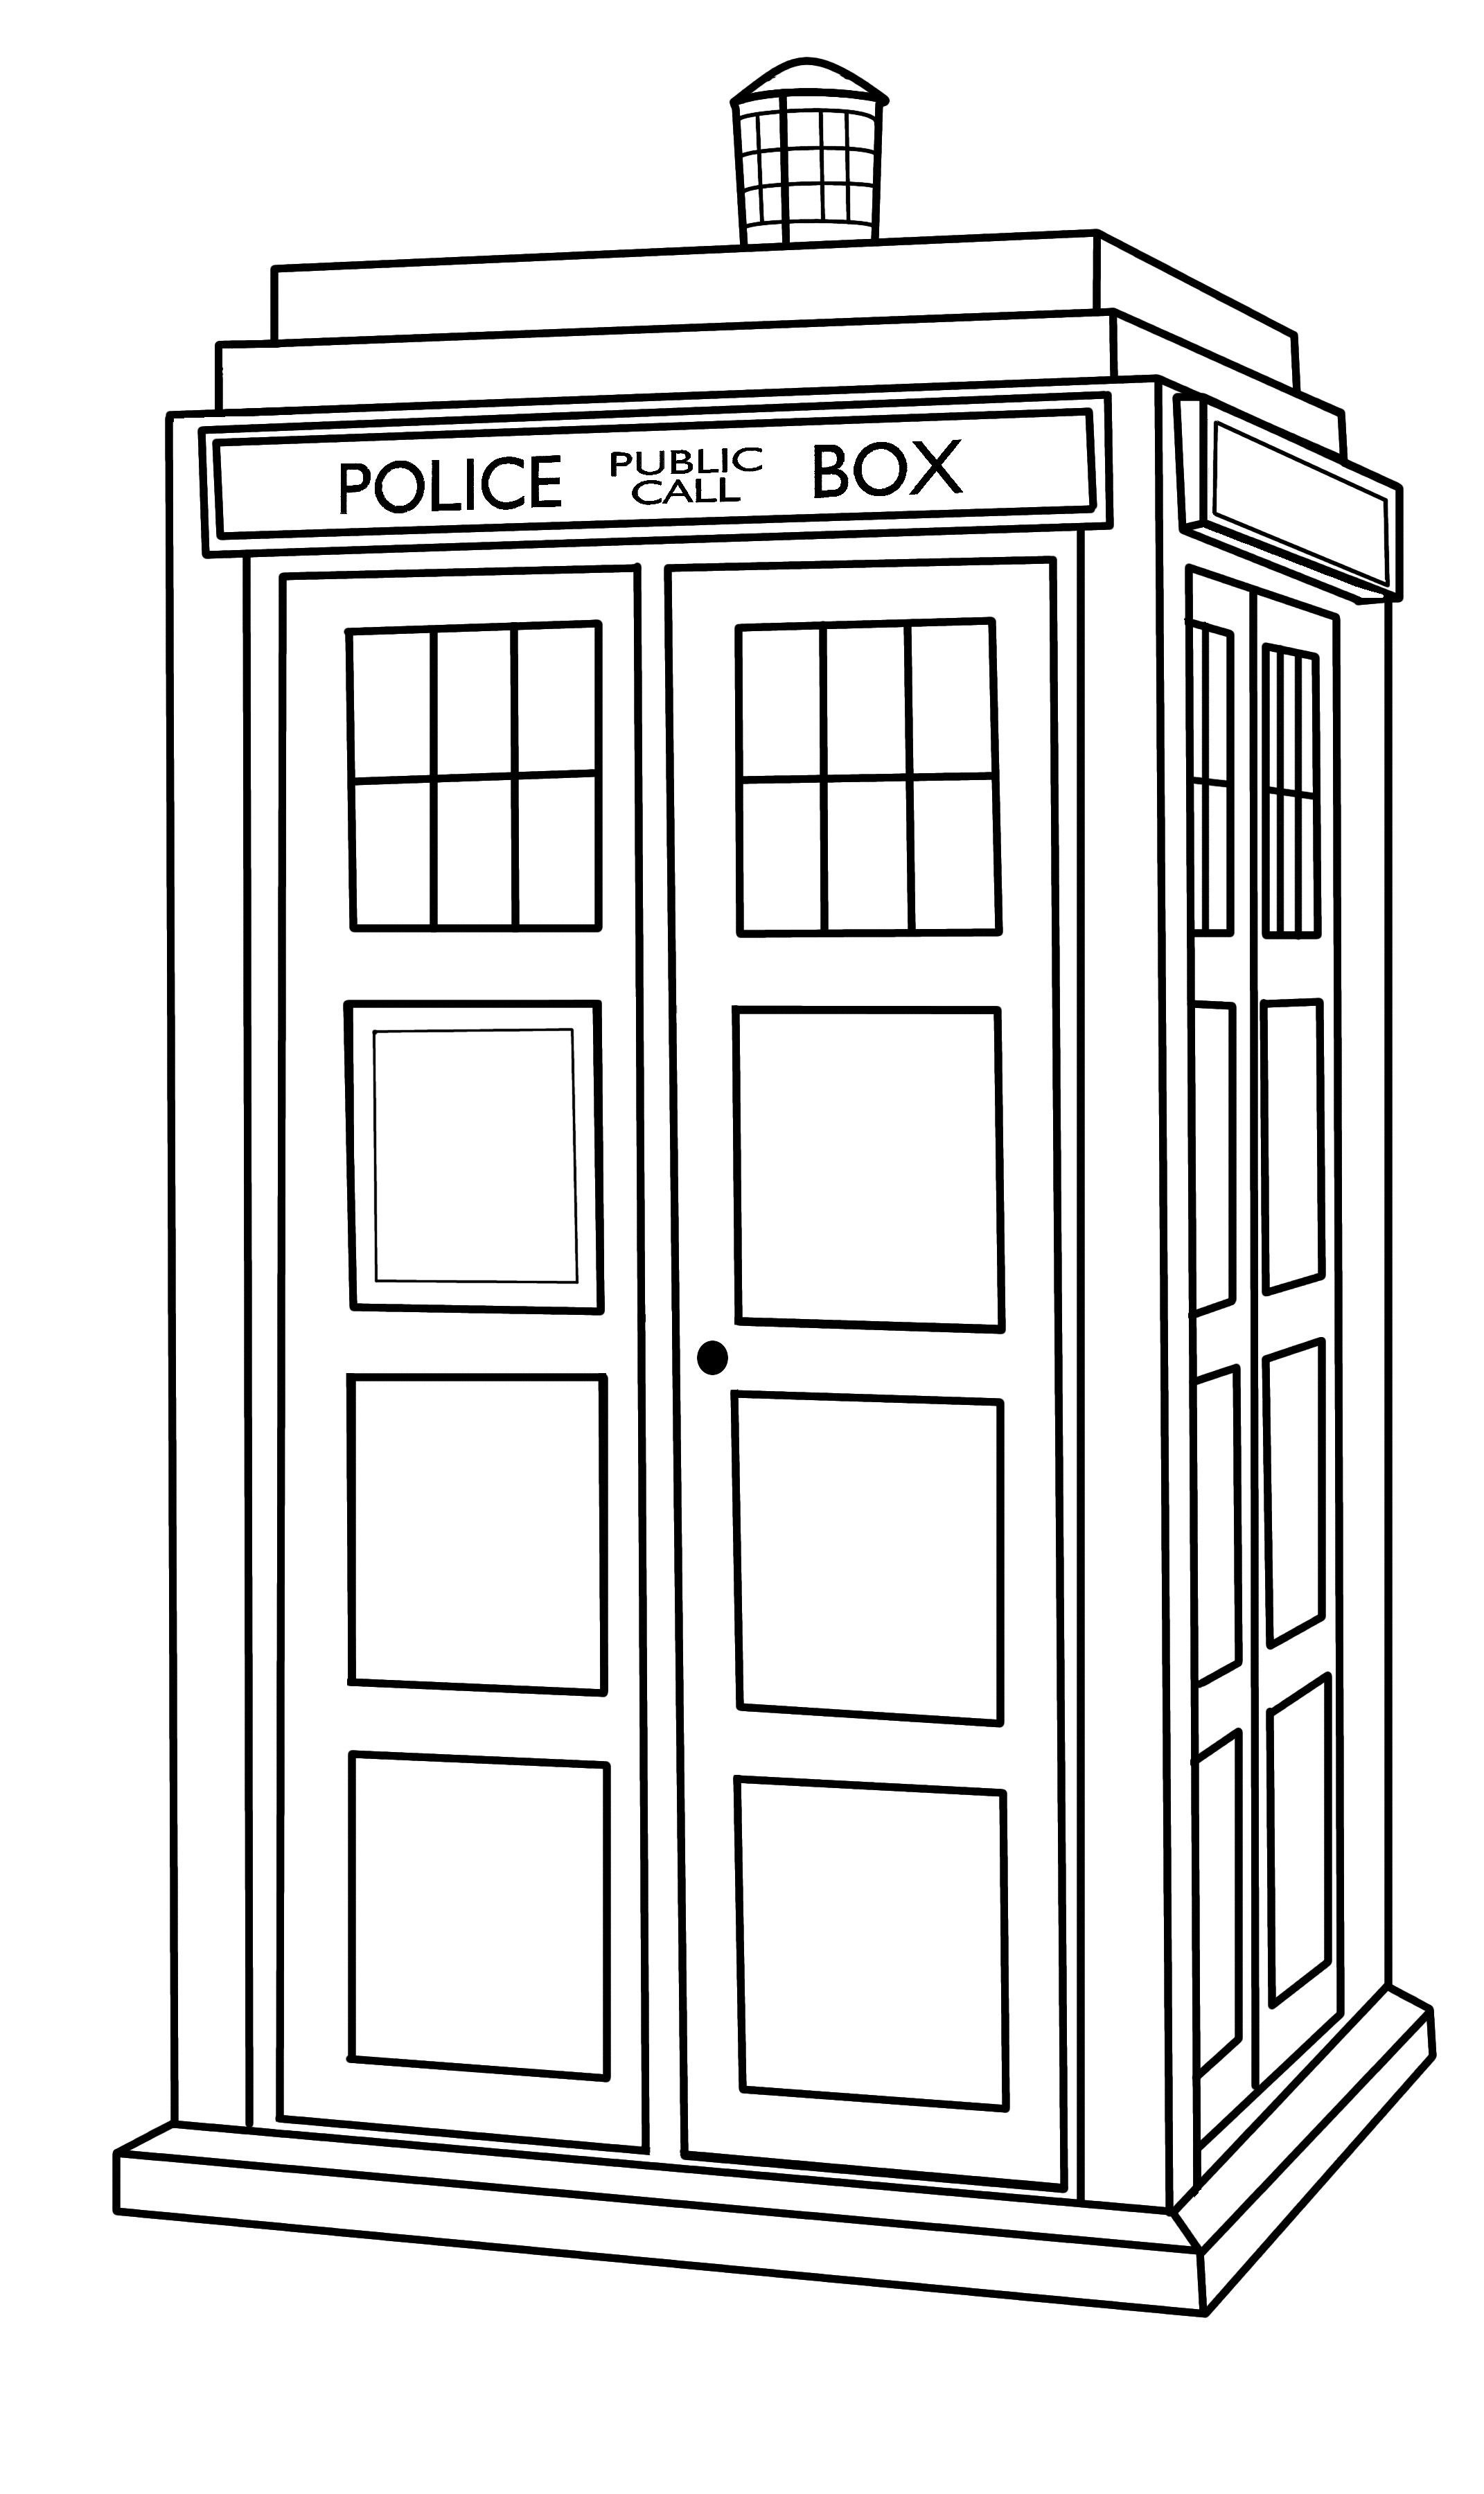 tardis coloring page doctor who wibbly wobbly timey wimey coloring pages printables fun blog page coloring tardis